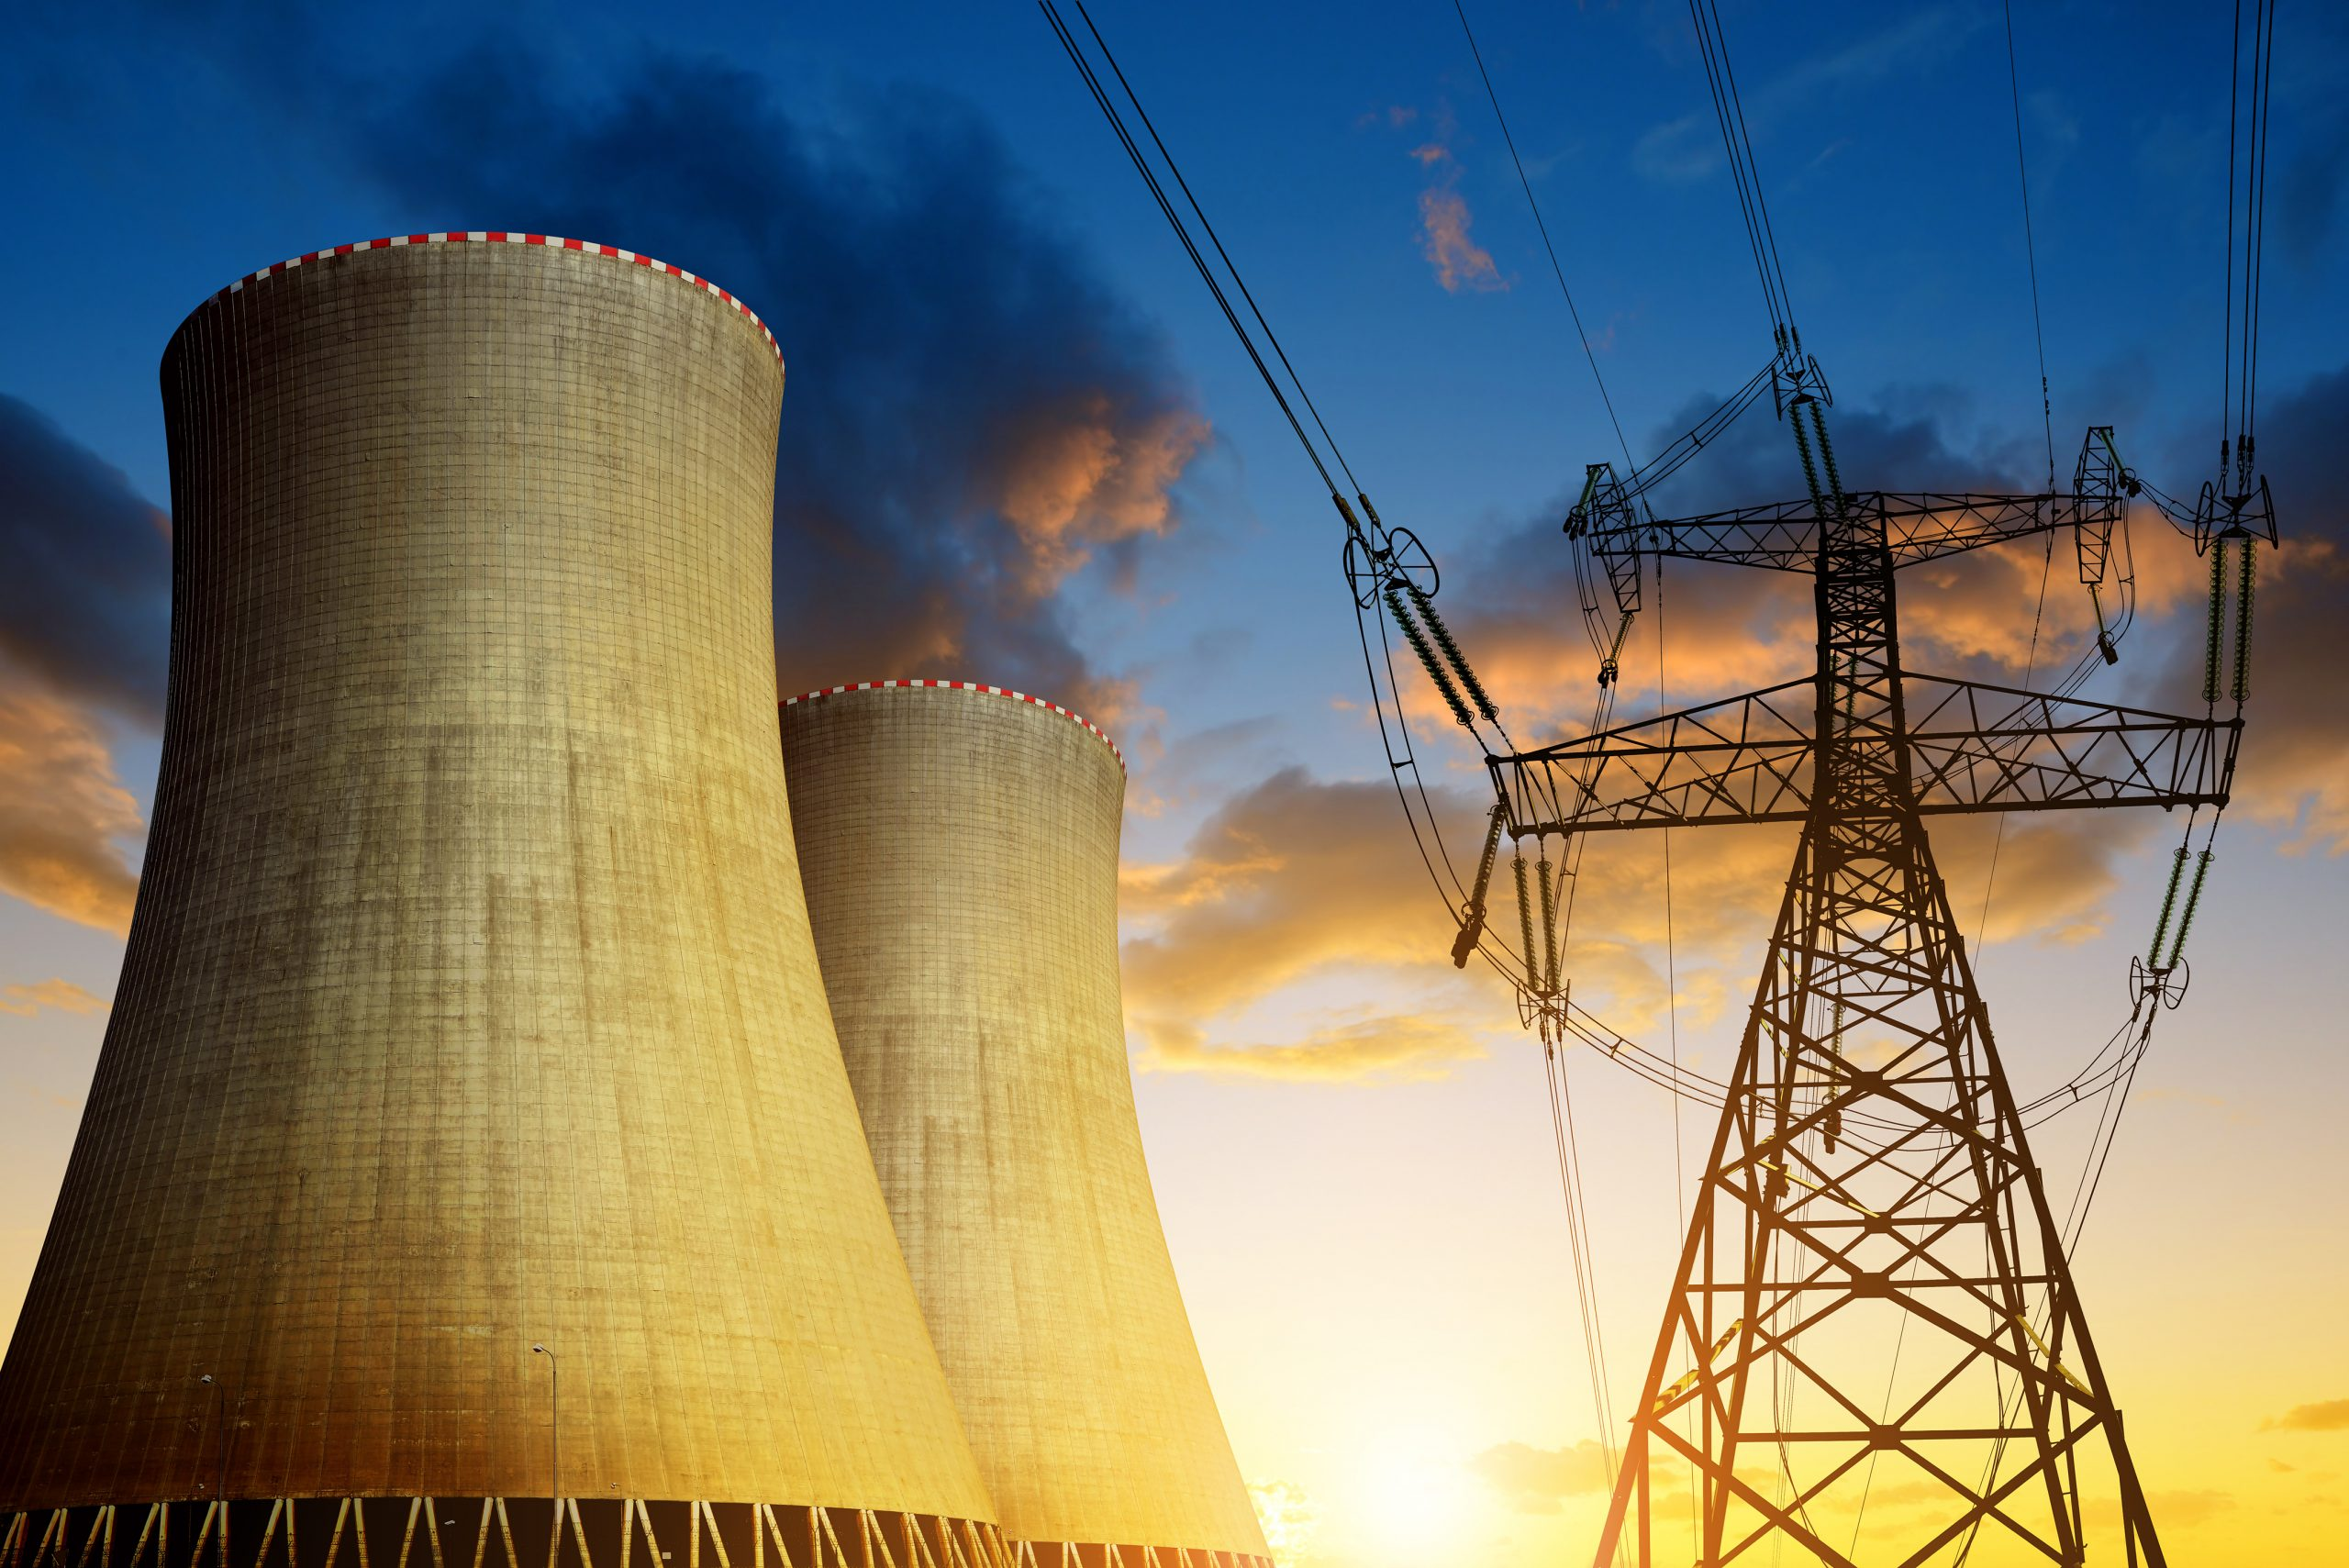 Image shows cooling towers of a nuclear plant next to high voltage transmission and distribution tower and lines.